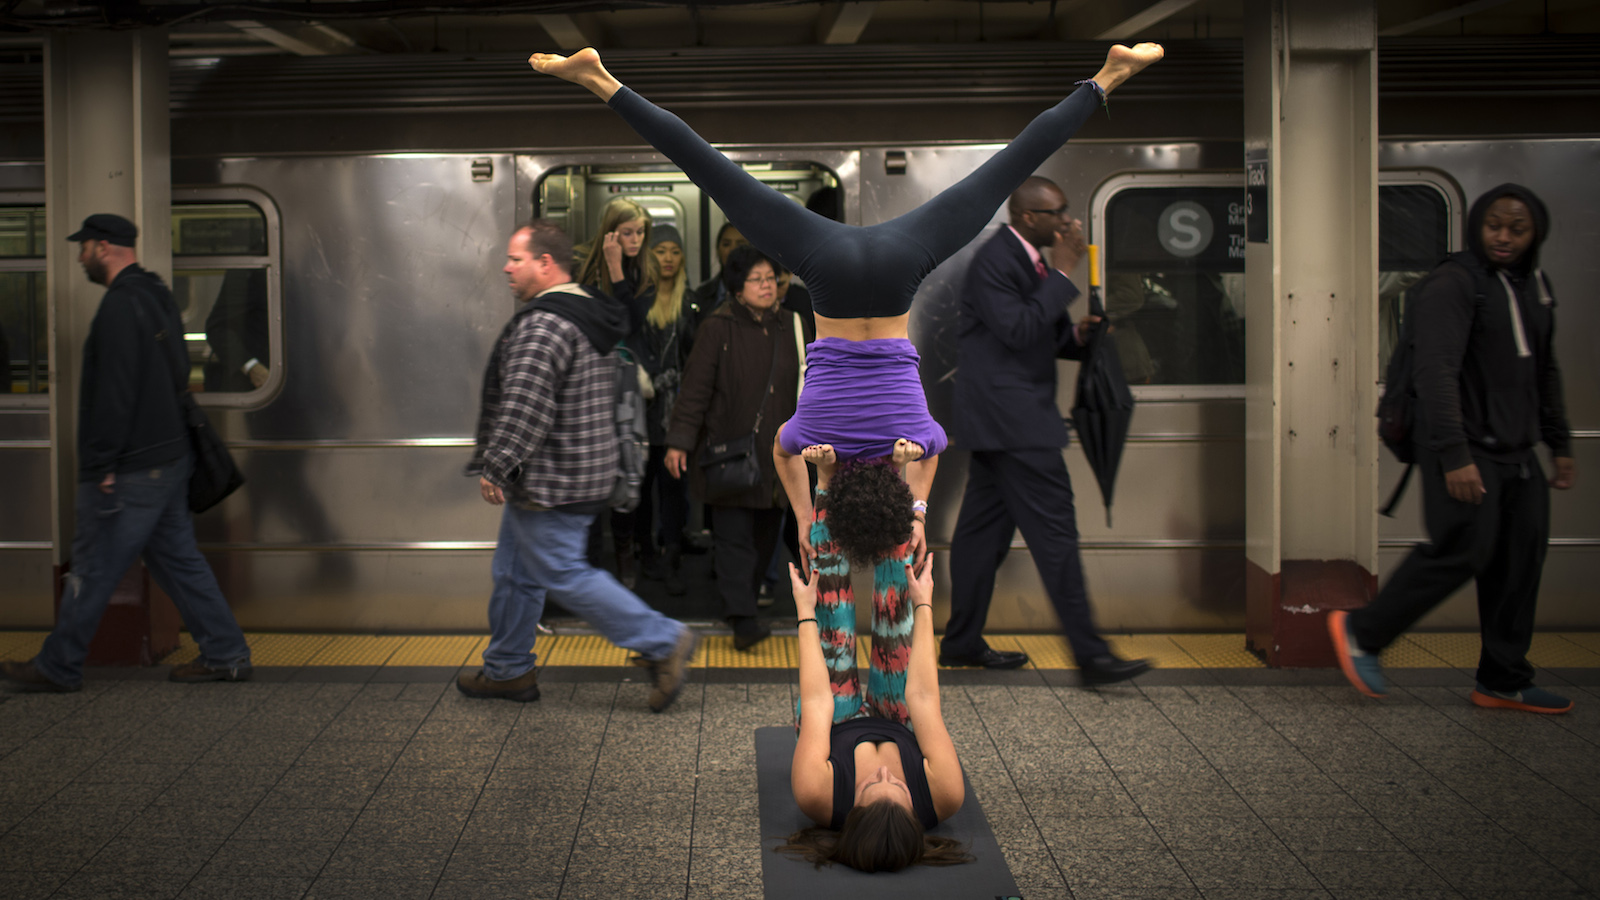 "Lauren Tallody (bottom) and Bassam Kubba (top) practice ""Acro-yoga"", a mixture of yoga and acrobatics on a subway platform at 42nd Street beneath Grand Central station in New York city, October 23, 2014.   REUTERS/Mike Segar   (UNITED STATES - Tags: SOCIETY) - RTR4BD9Q"